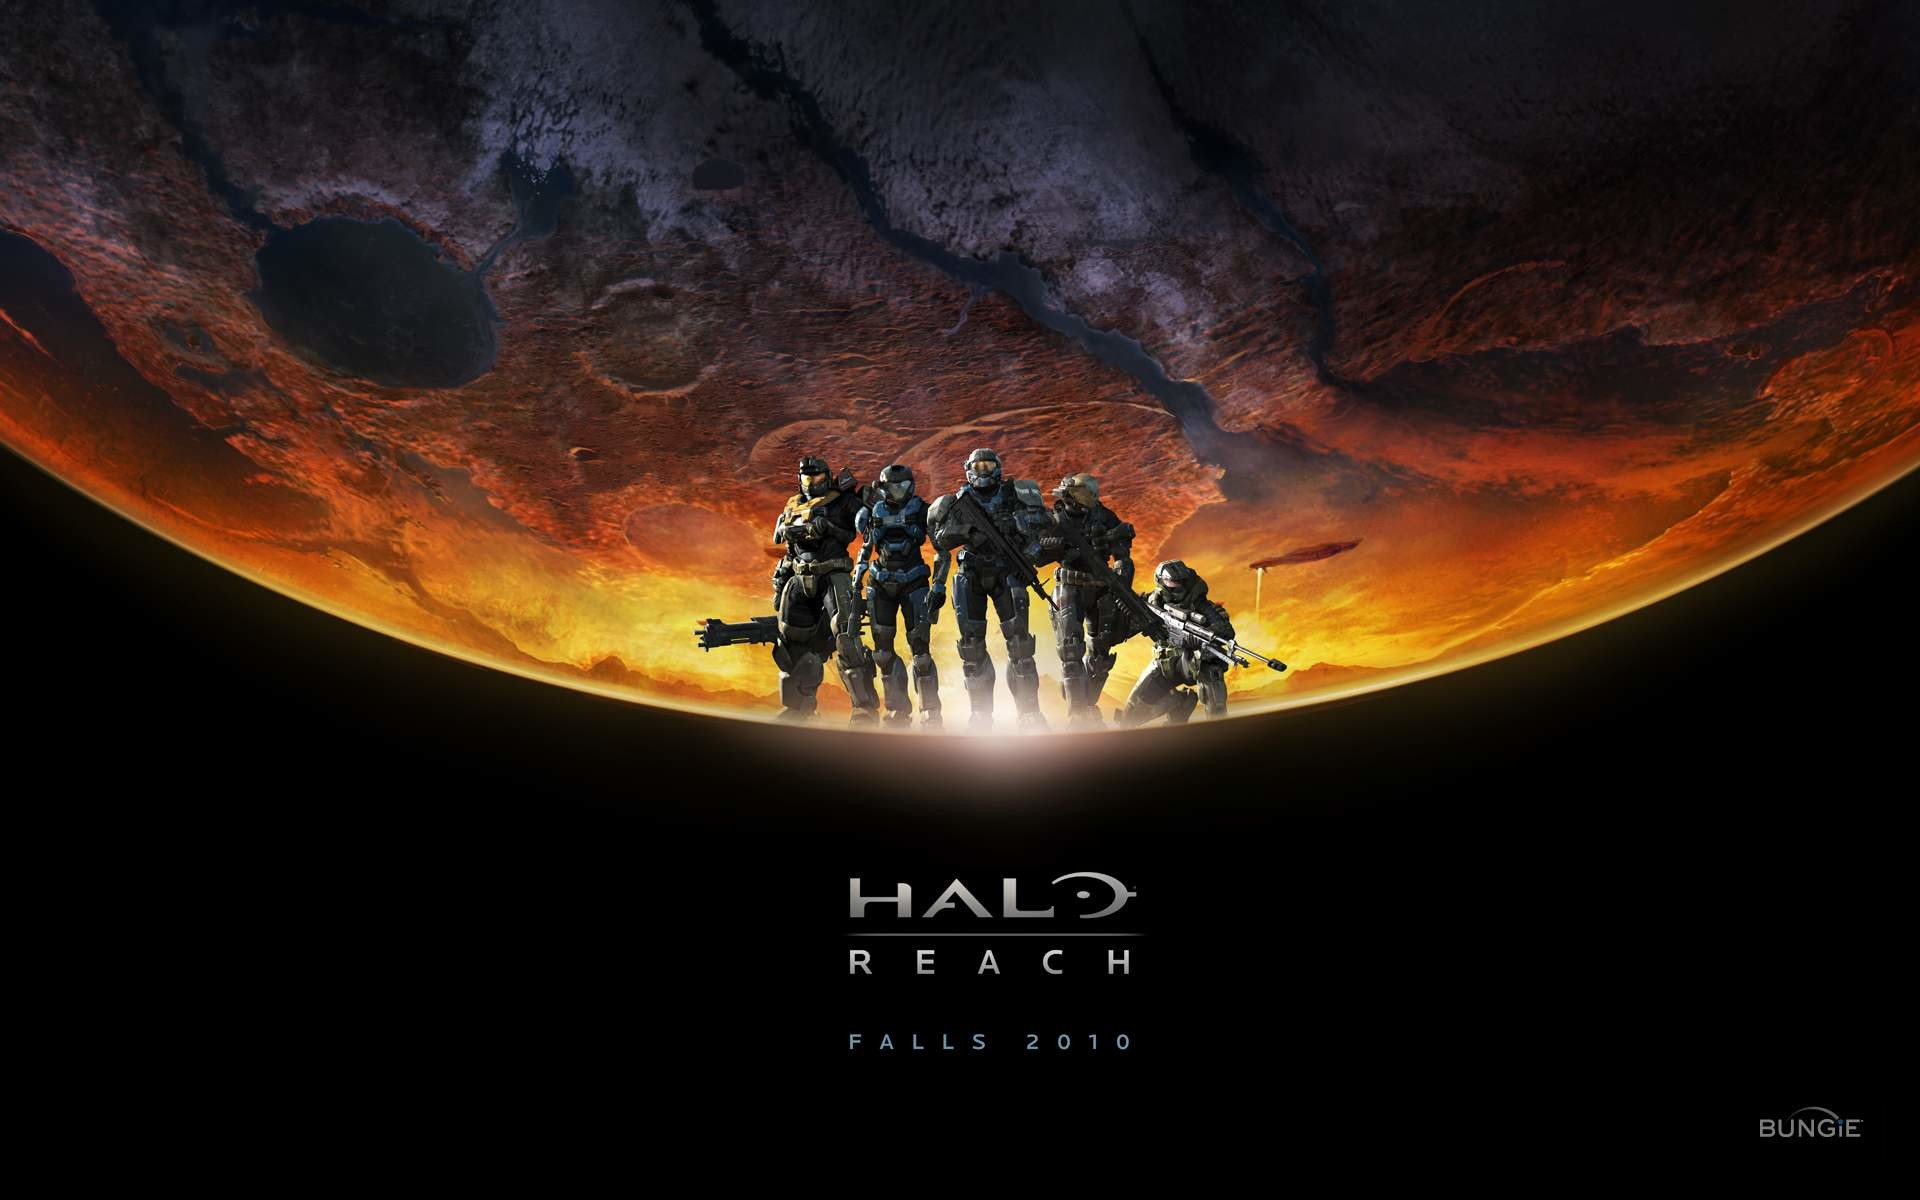 halo ce wallpaper, pictures of halo 5